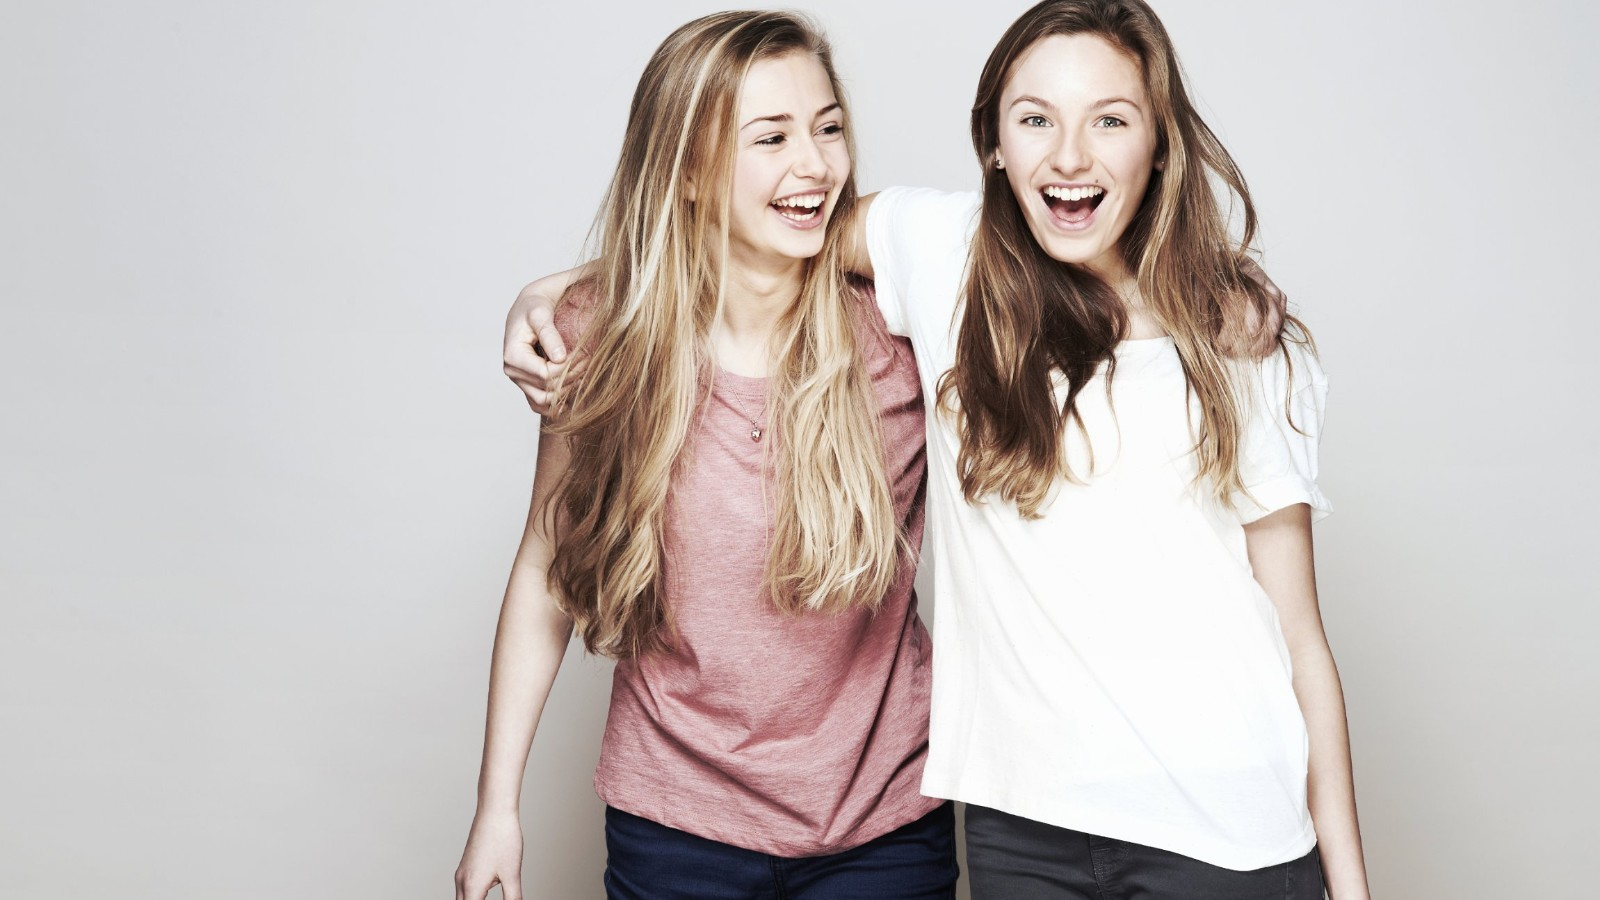 Study Happy Friends Could Help Teens Beat Depression